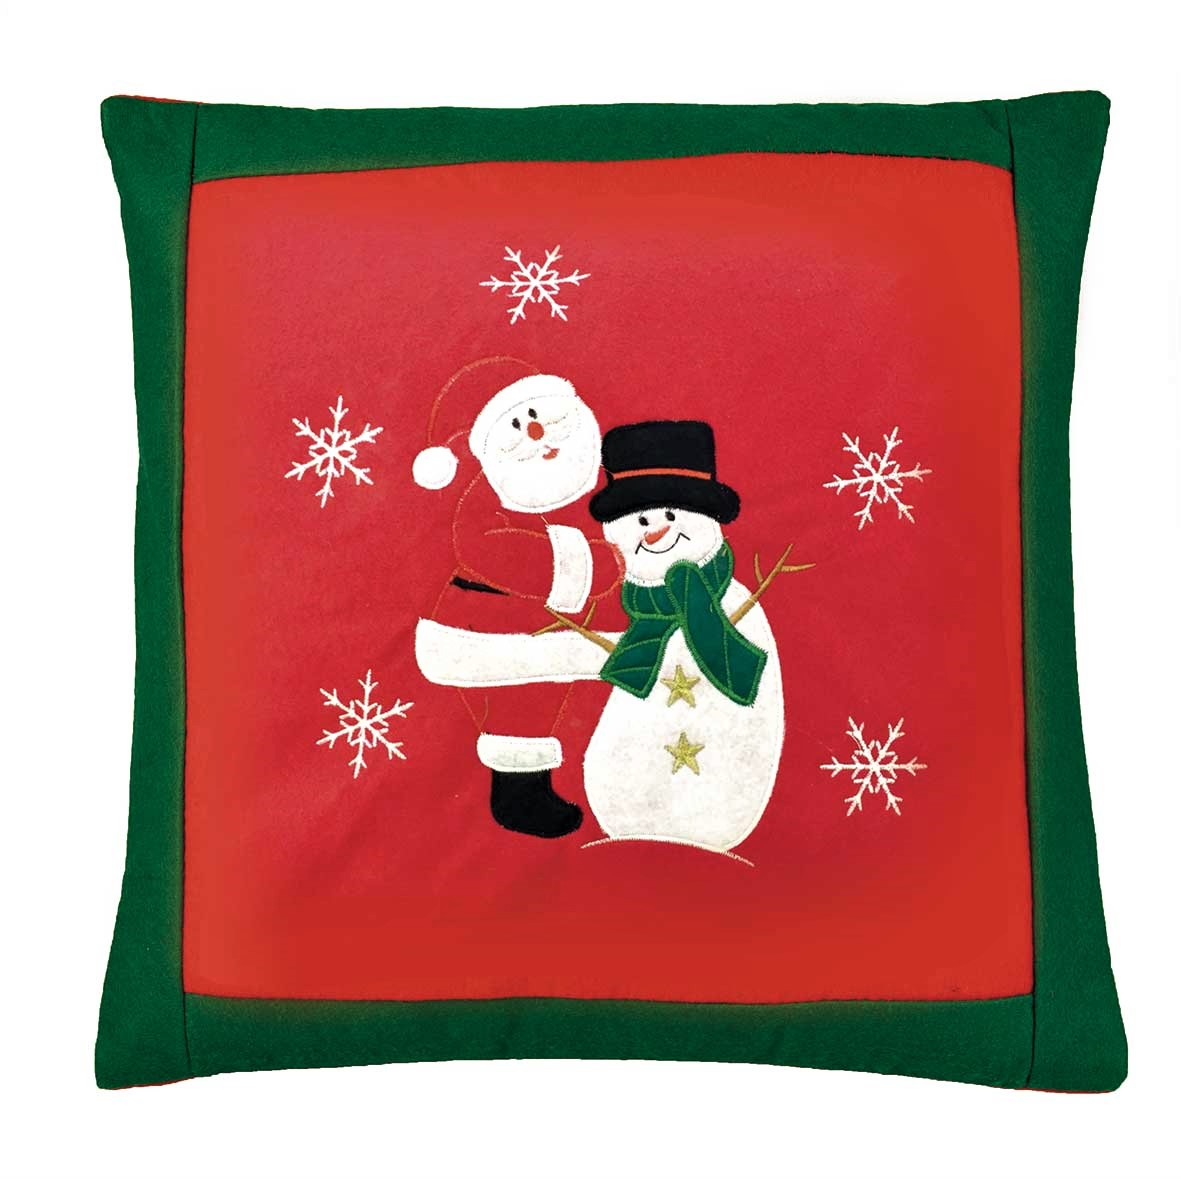 Santa And Snowman Embroidered Christmas Cushion Cover Red 42x42cm 16x16 Square